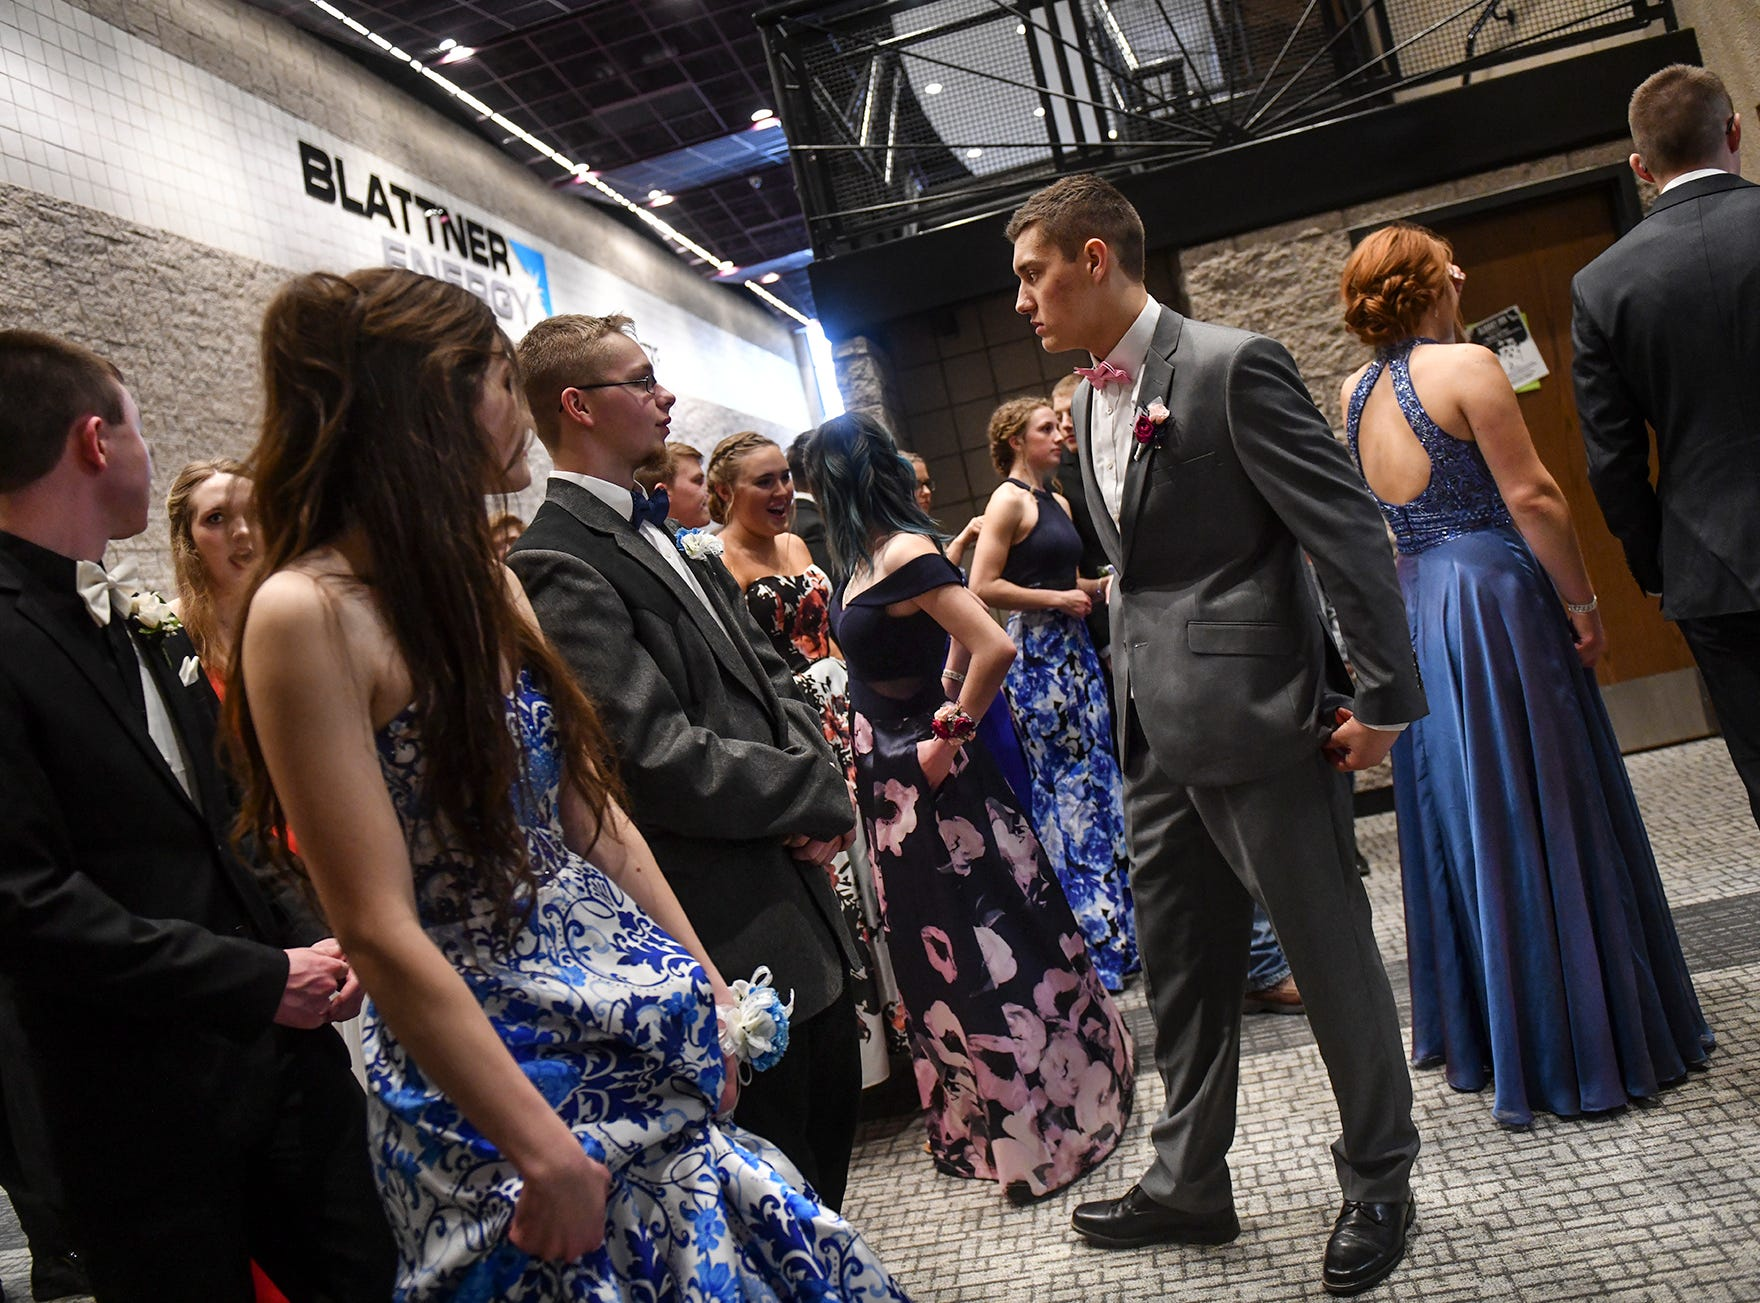 Couples get ready to take the stage for prom grand march Saturday, April 6, at Albany High School.